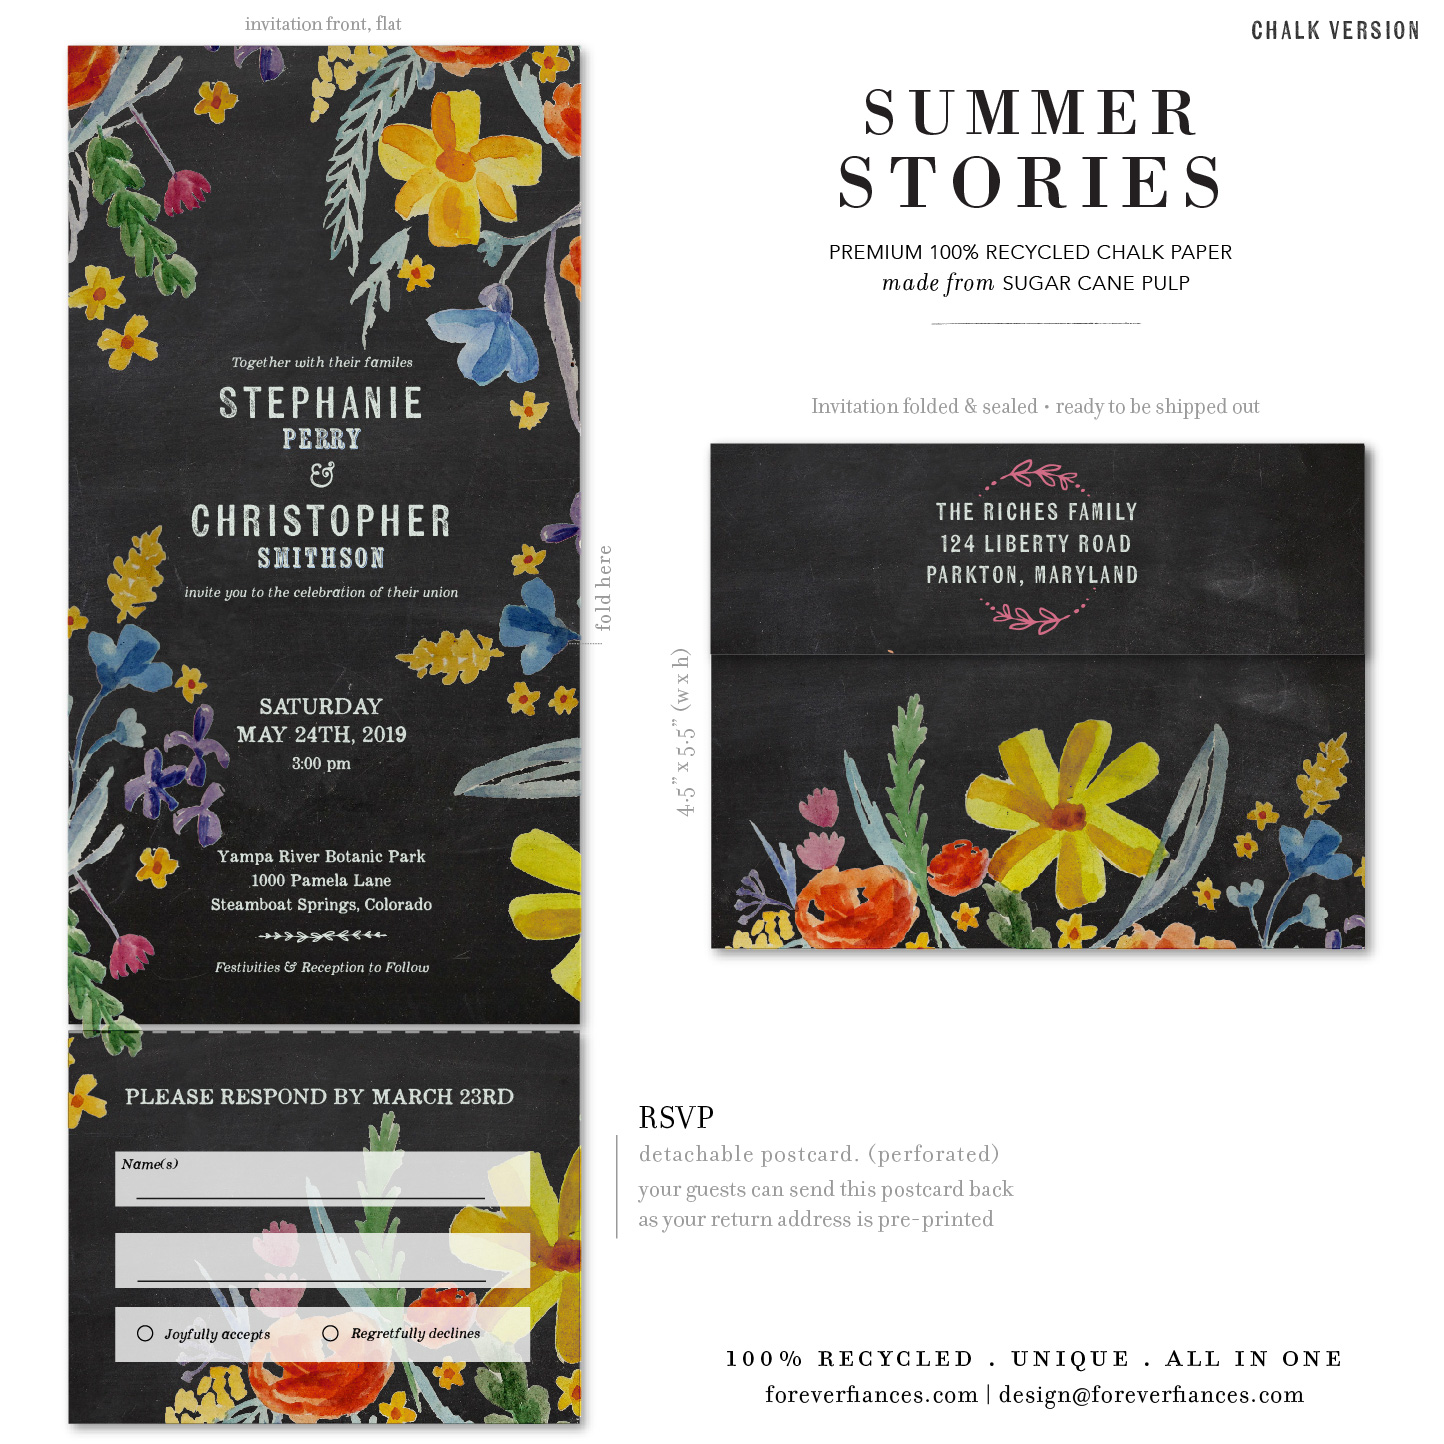 summer stories wedding invitations chalk version